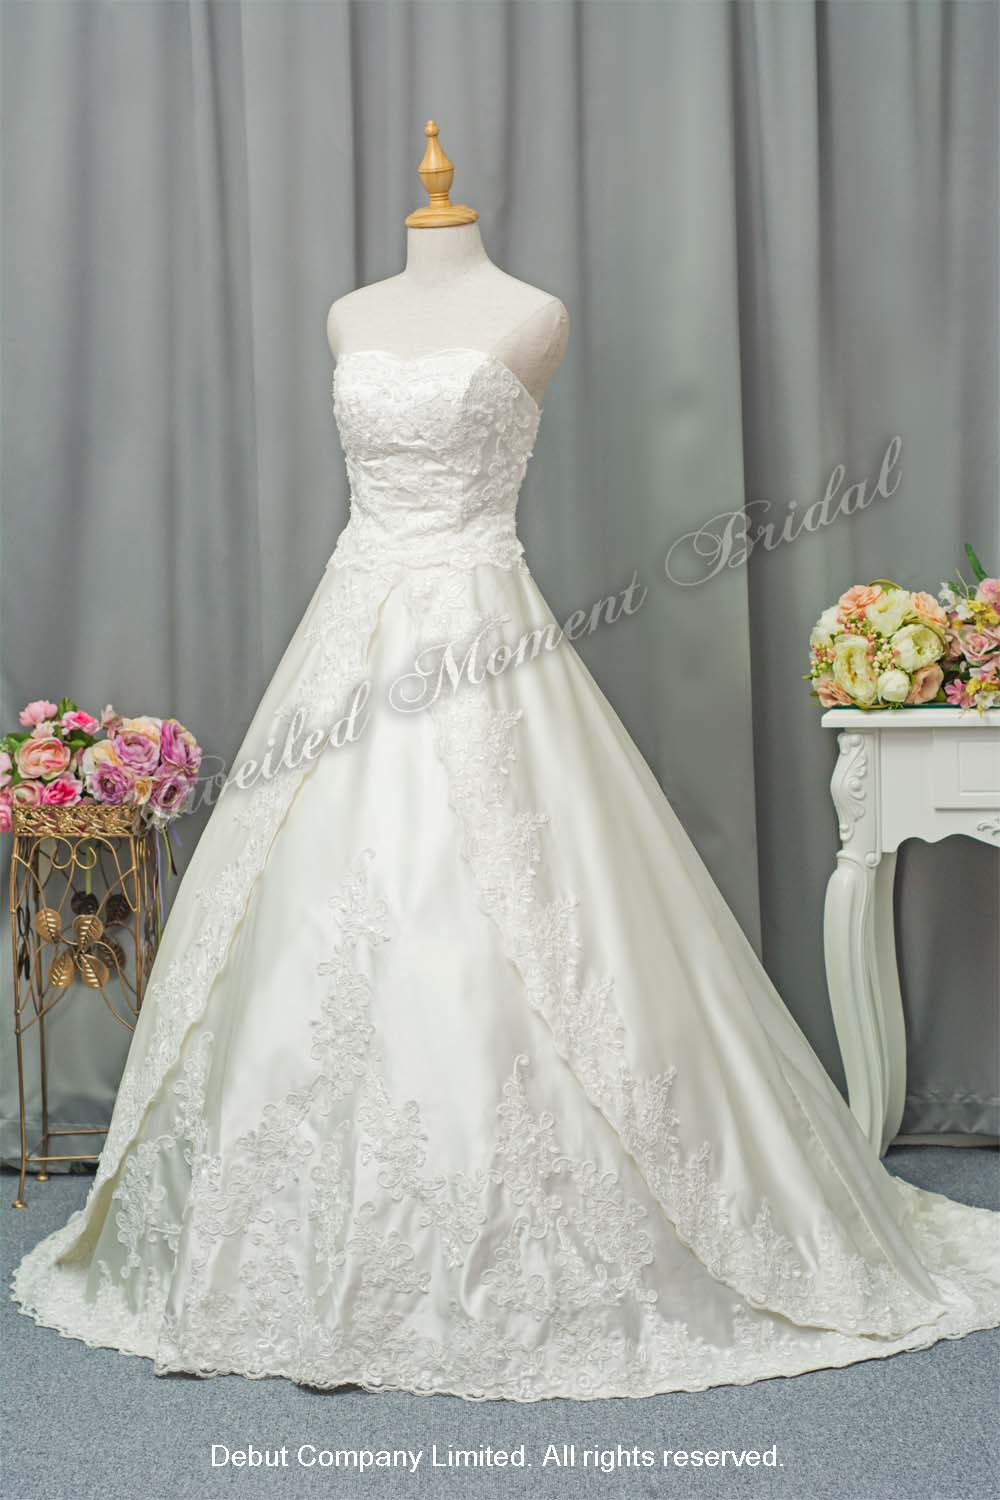 Strapless, A-line bridal gown with a sweetheart neckline, lace appliques and an embellished lace chapel train. 無肩帶low-cut, 心形領口, 蕾絲花邊, A-line長拖尾婚紗